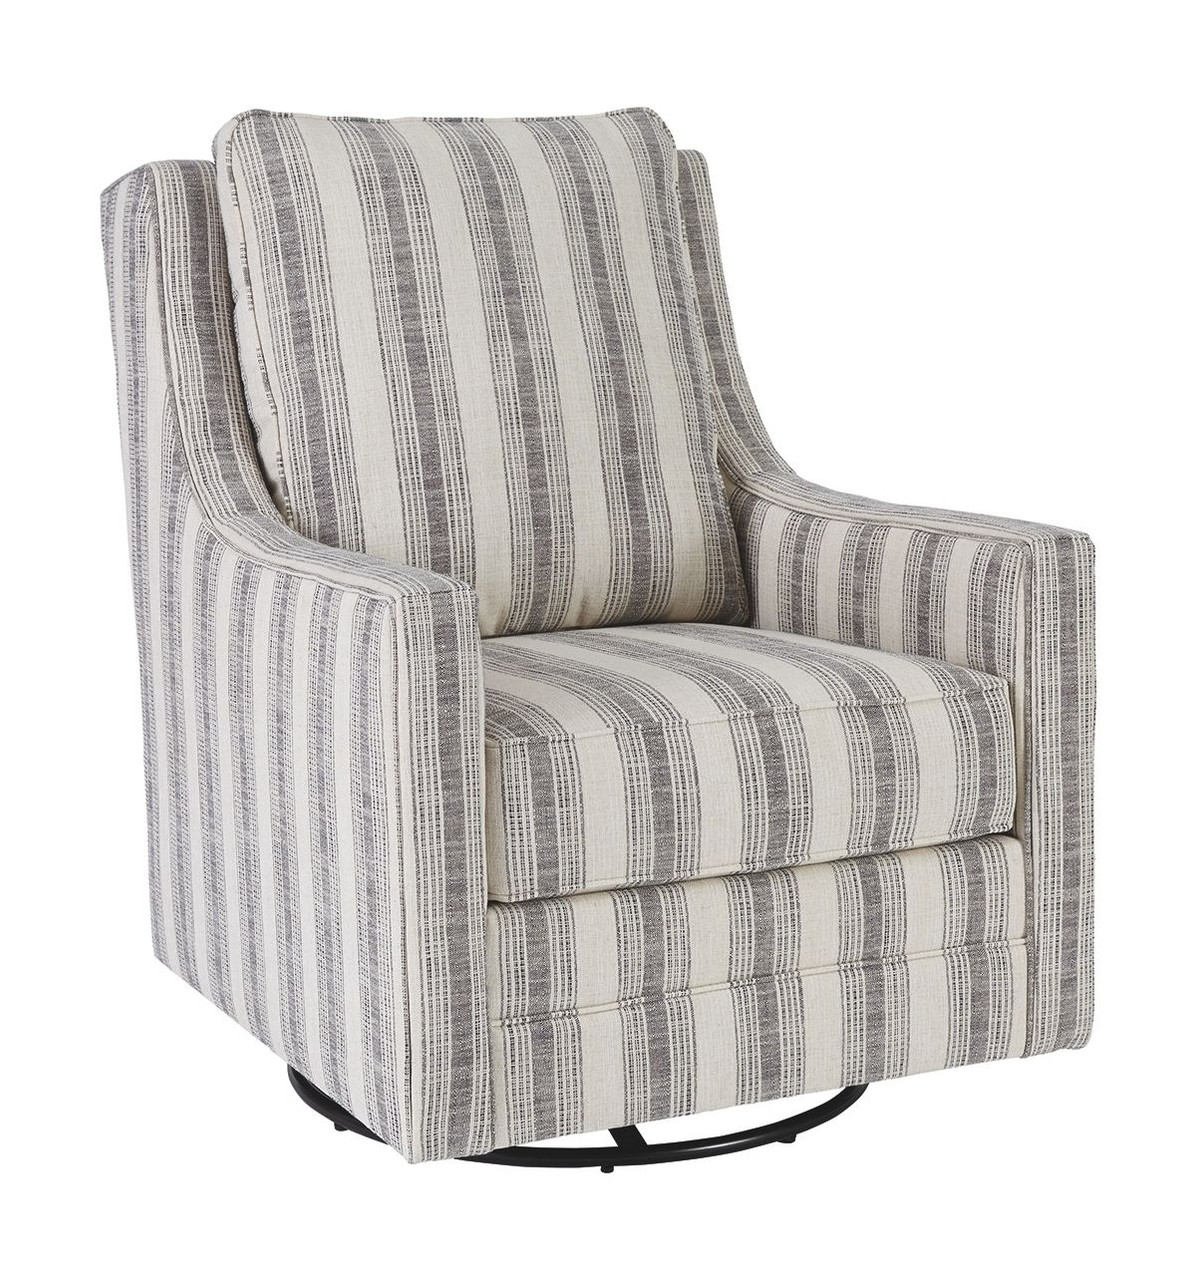 Ashley Kambria Ivory Black Swivel Glider Accent Chair On Sale At Red Shed Furniture Serving Goldsboro Wilson Greenville Nc